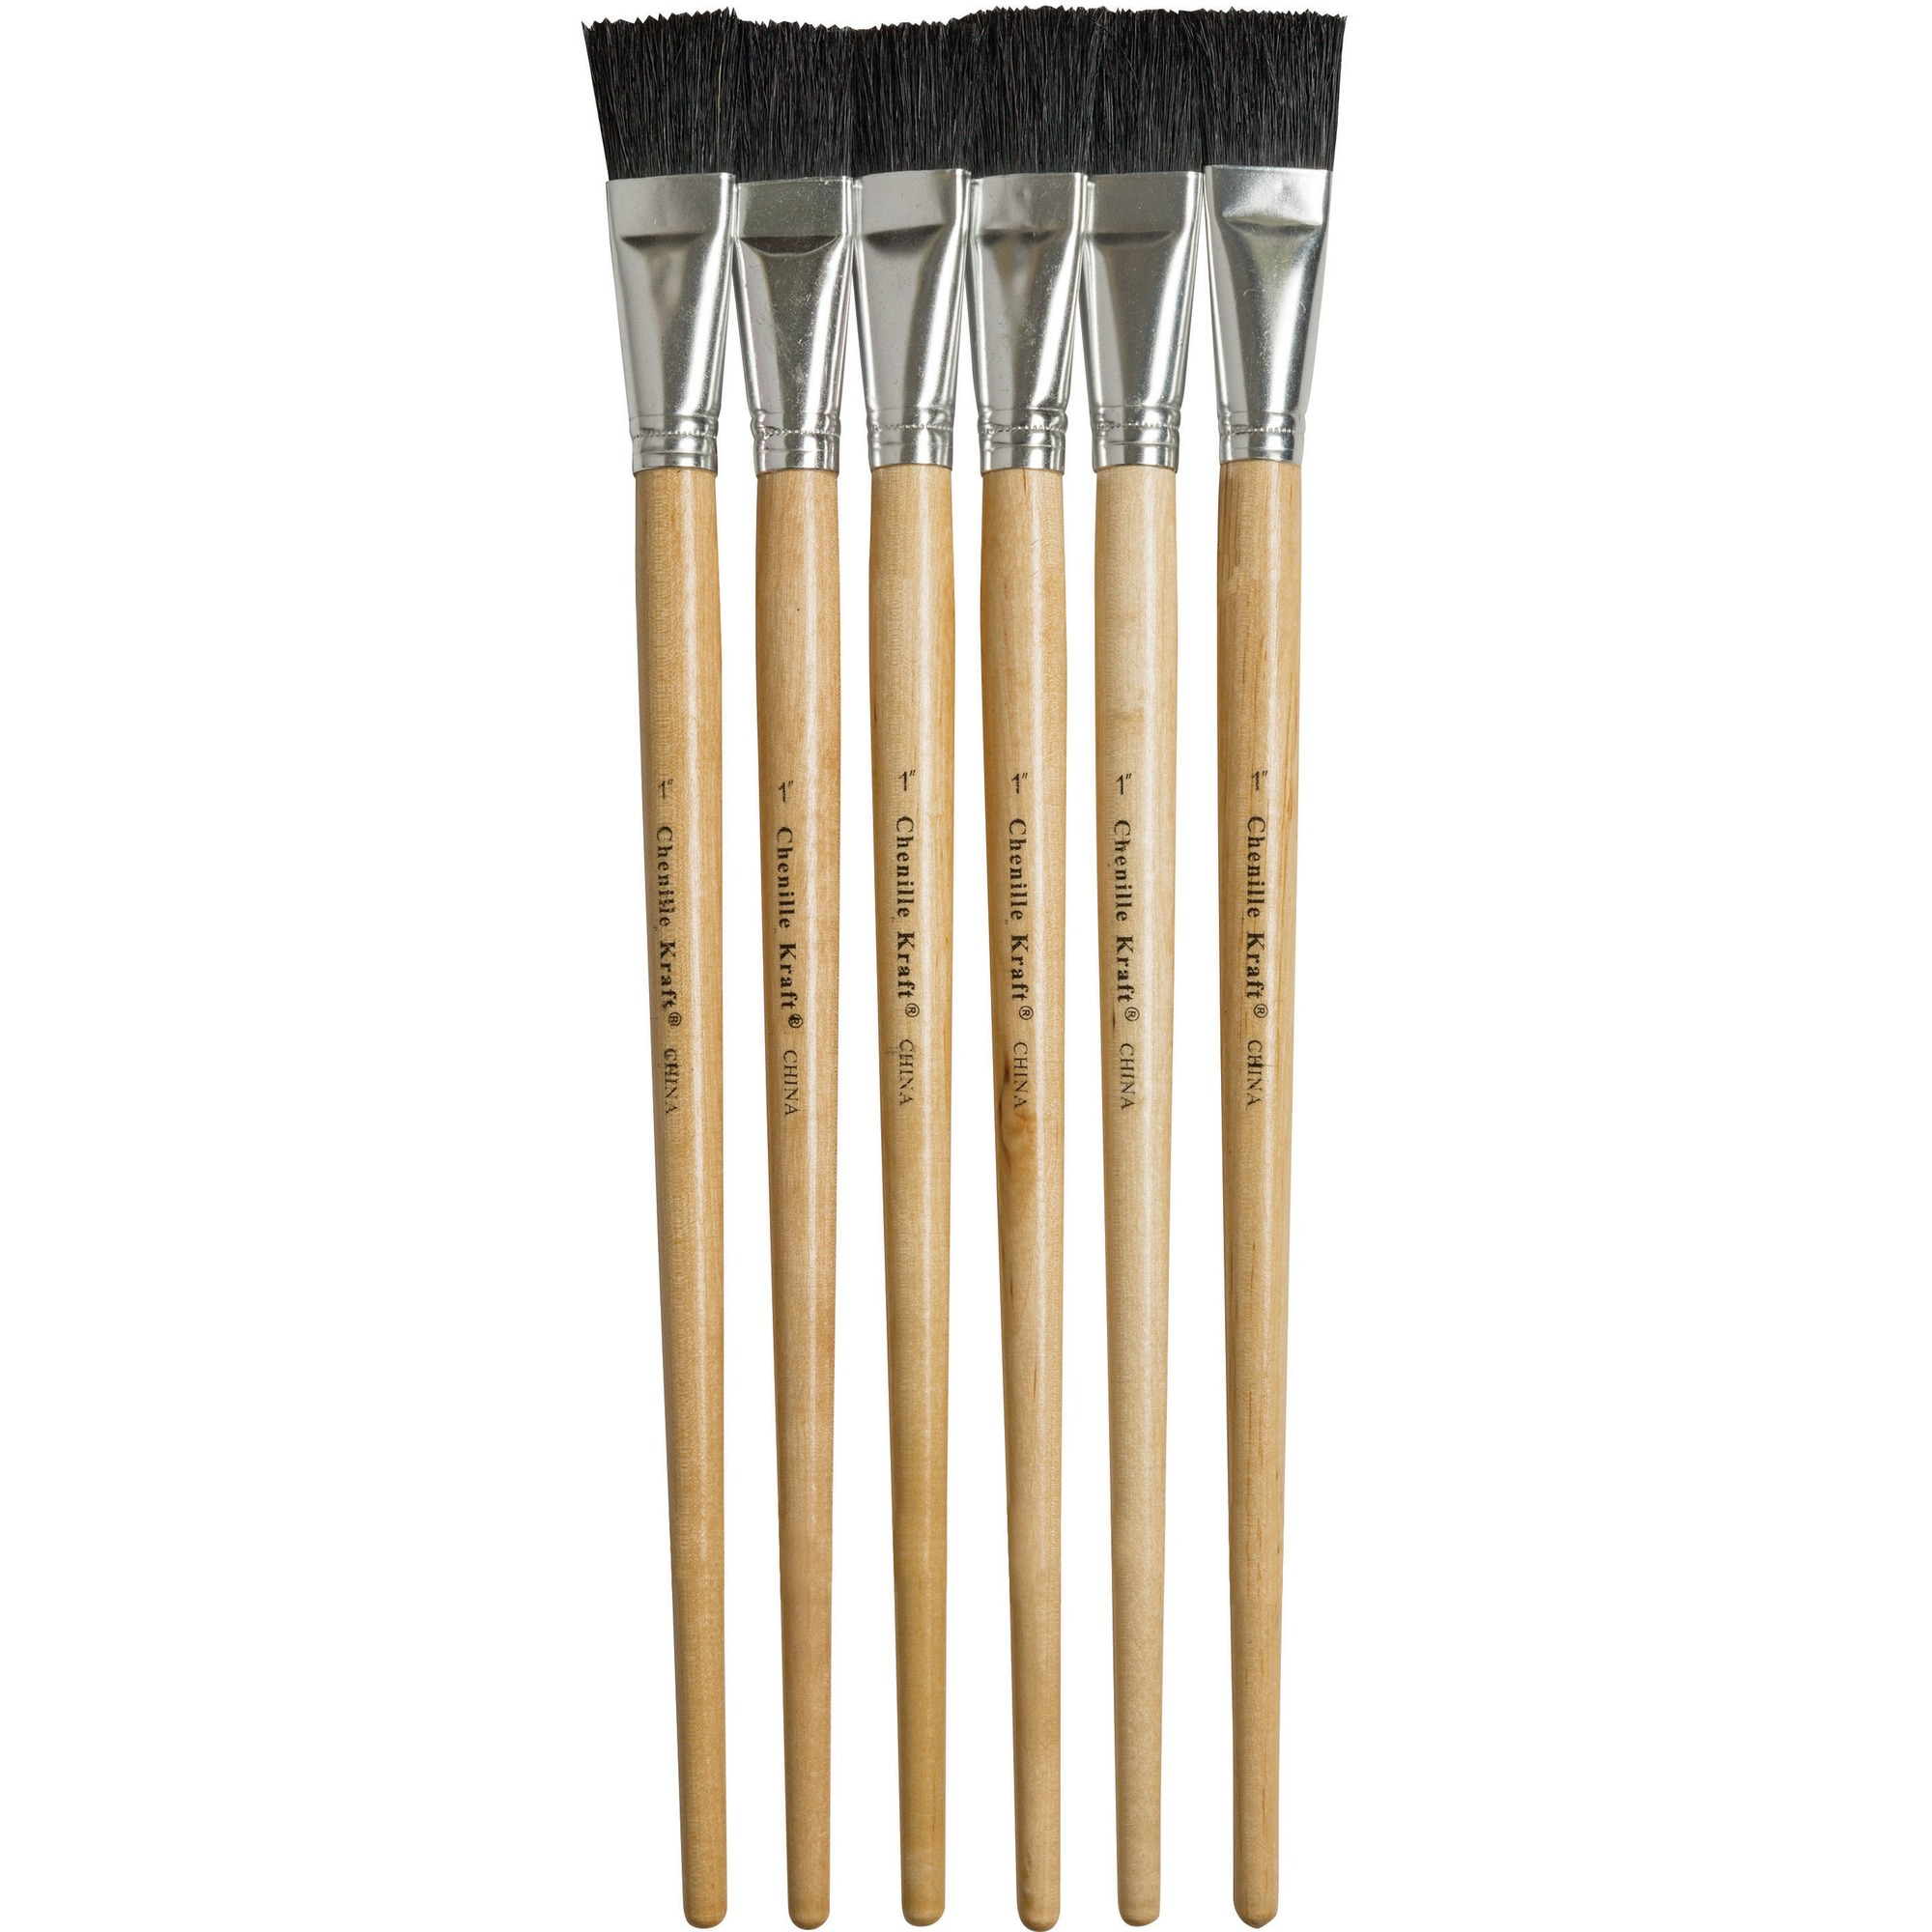 Pacon Corporation Creativity Street 1 Hog Bristle Paint Brushes - 6 Brush(Es) - 1 Bristle Natural Handle - Aluminum Ferrule